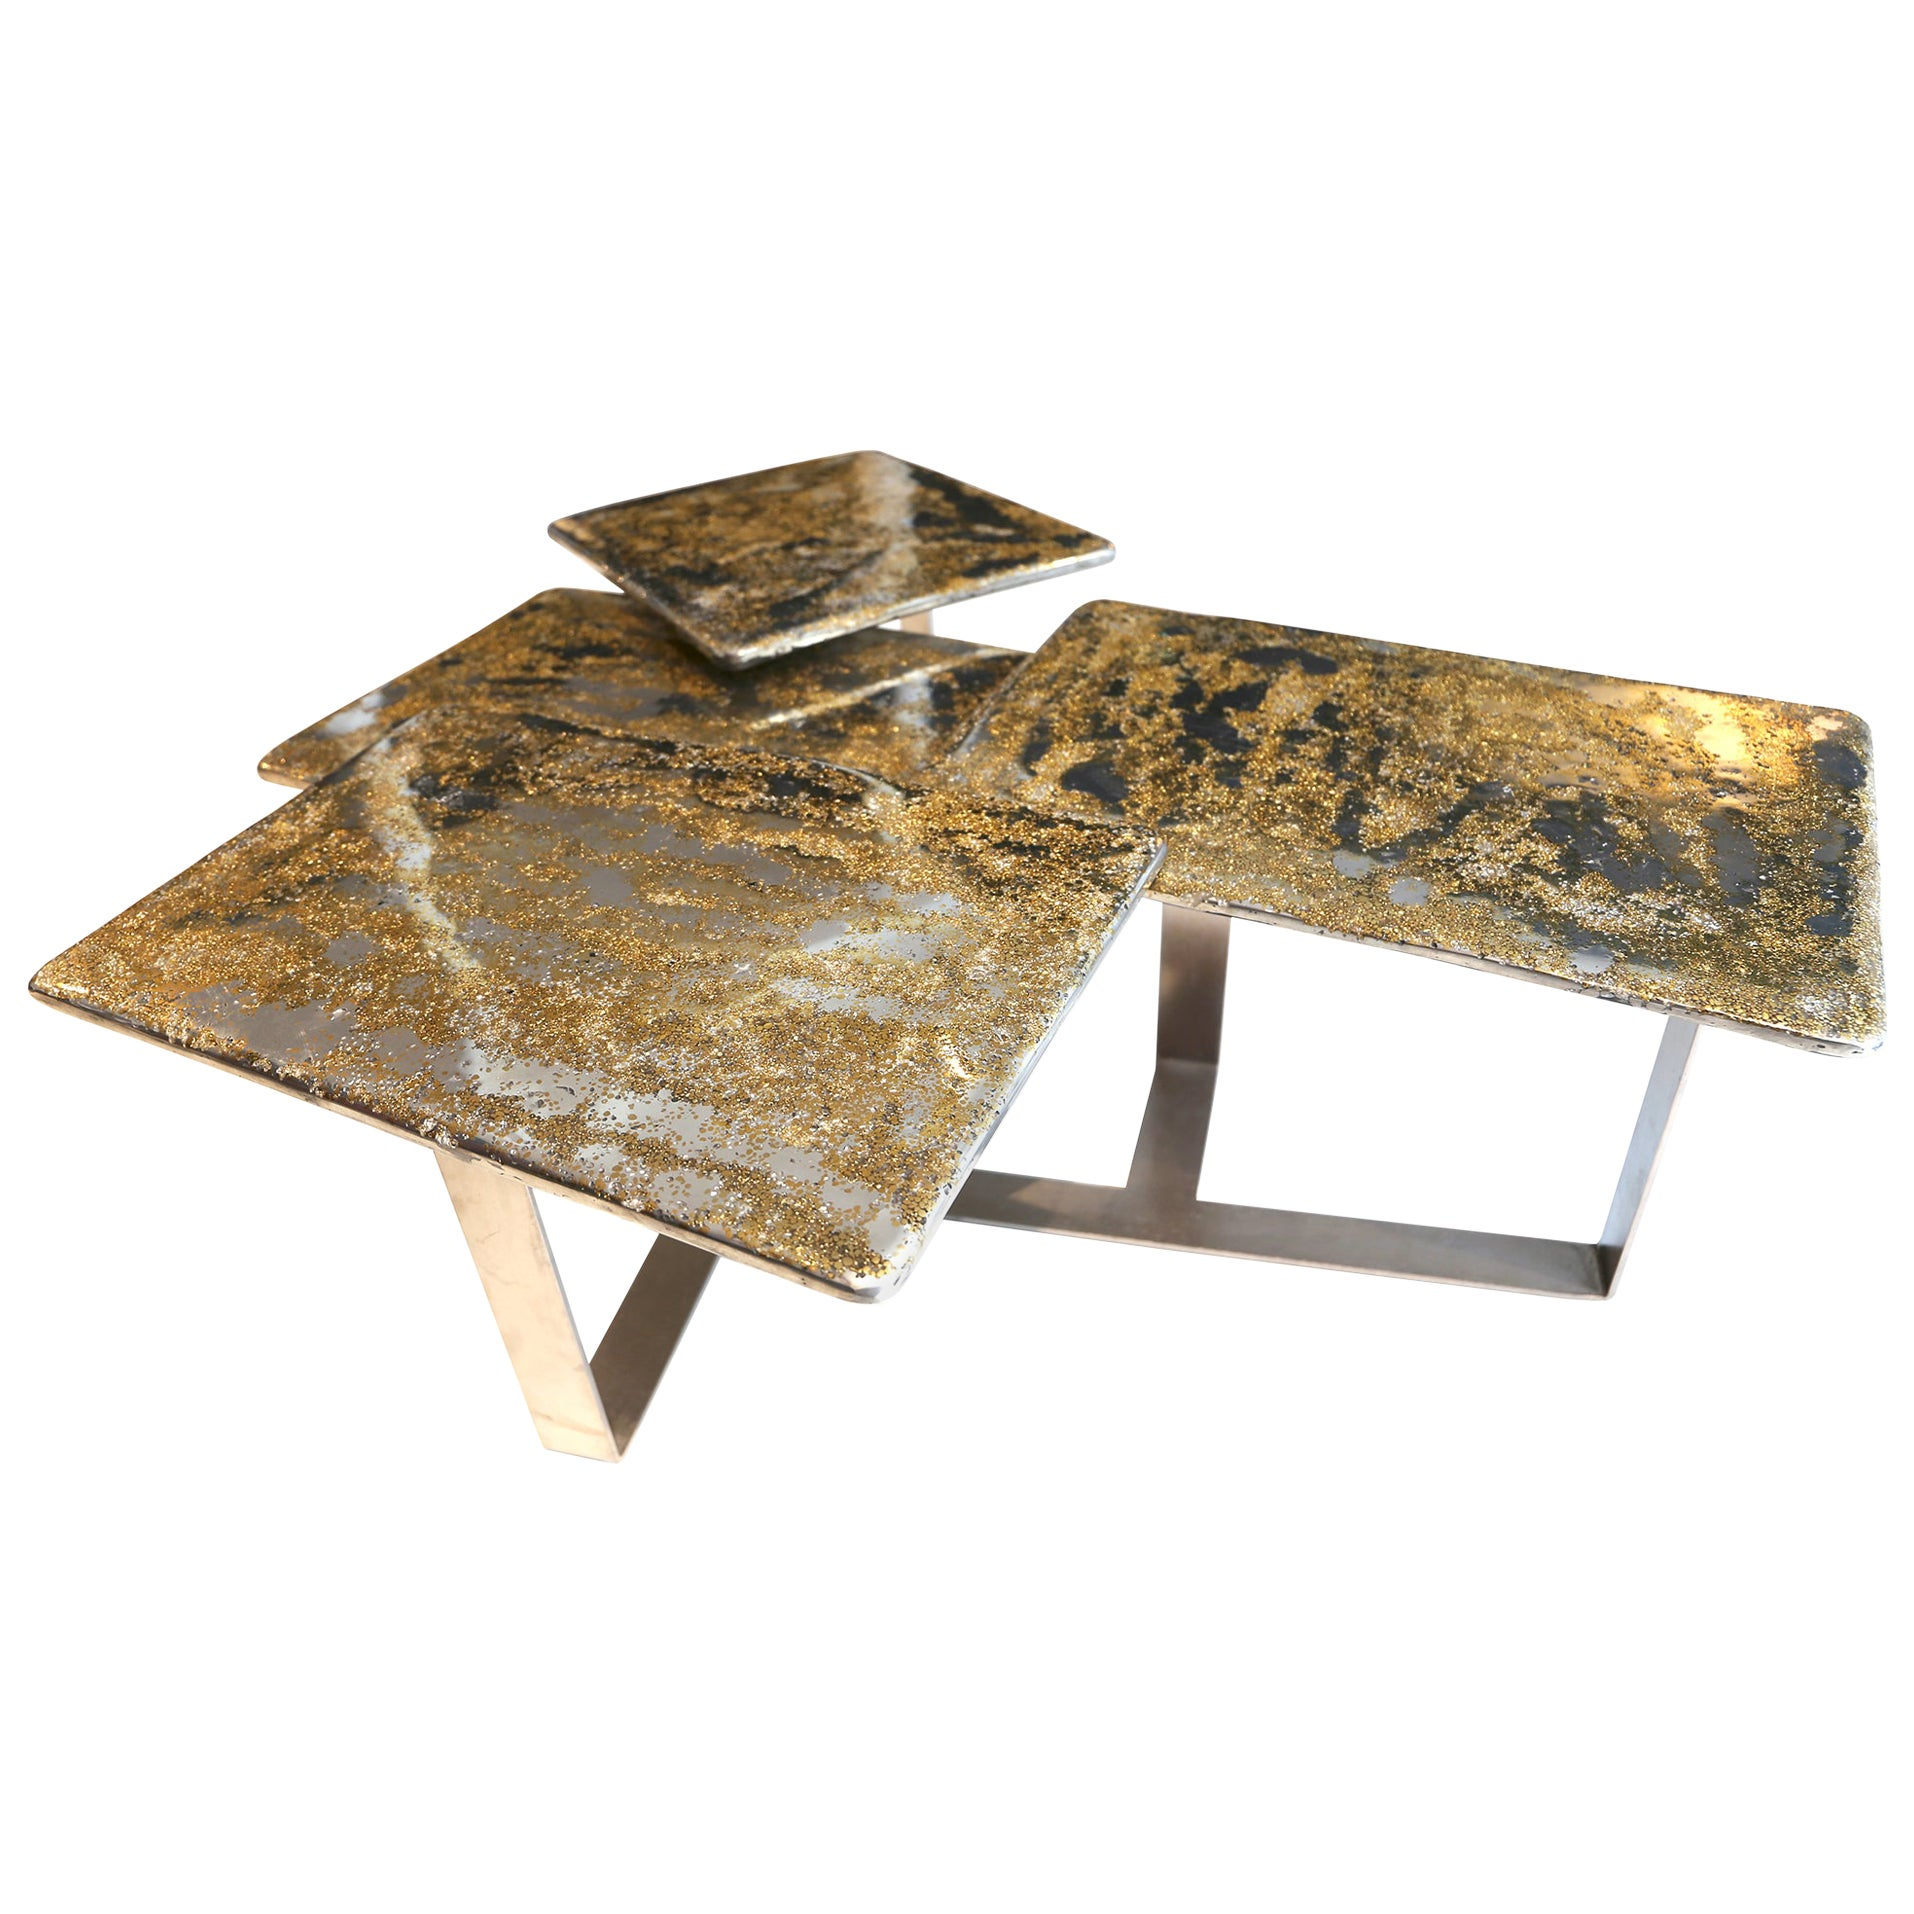 "Coffee Table ""Multifloor Sunlight"", Melted Pewter, Brass Grains, Crystal Resin"